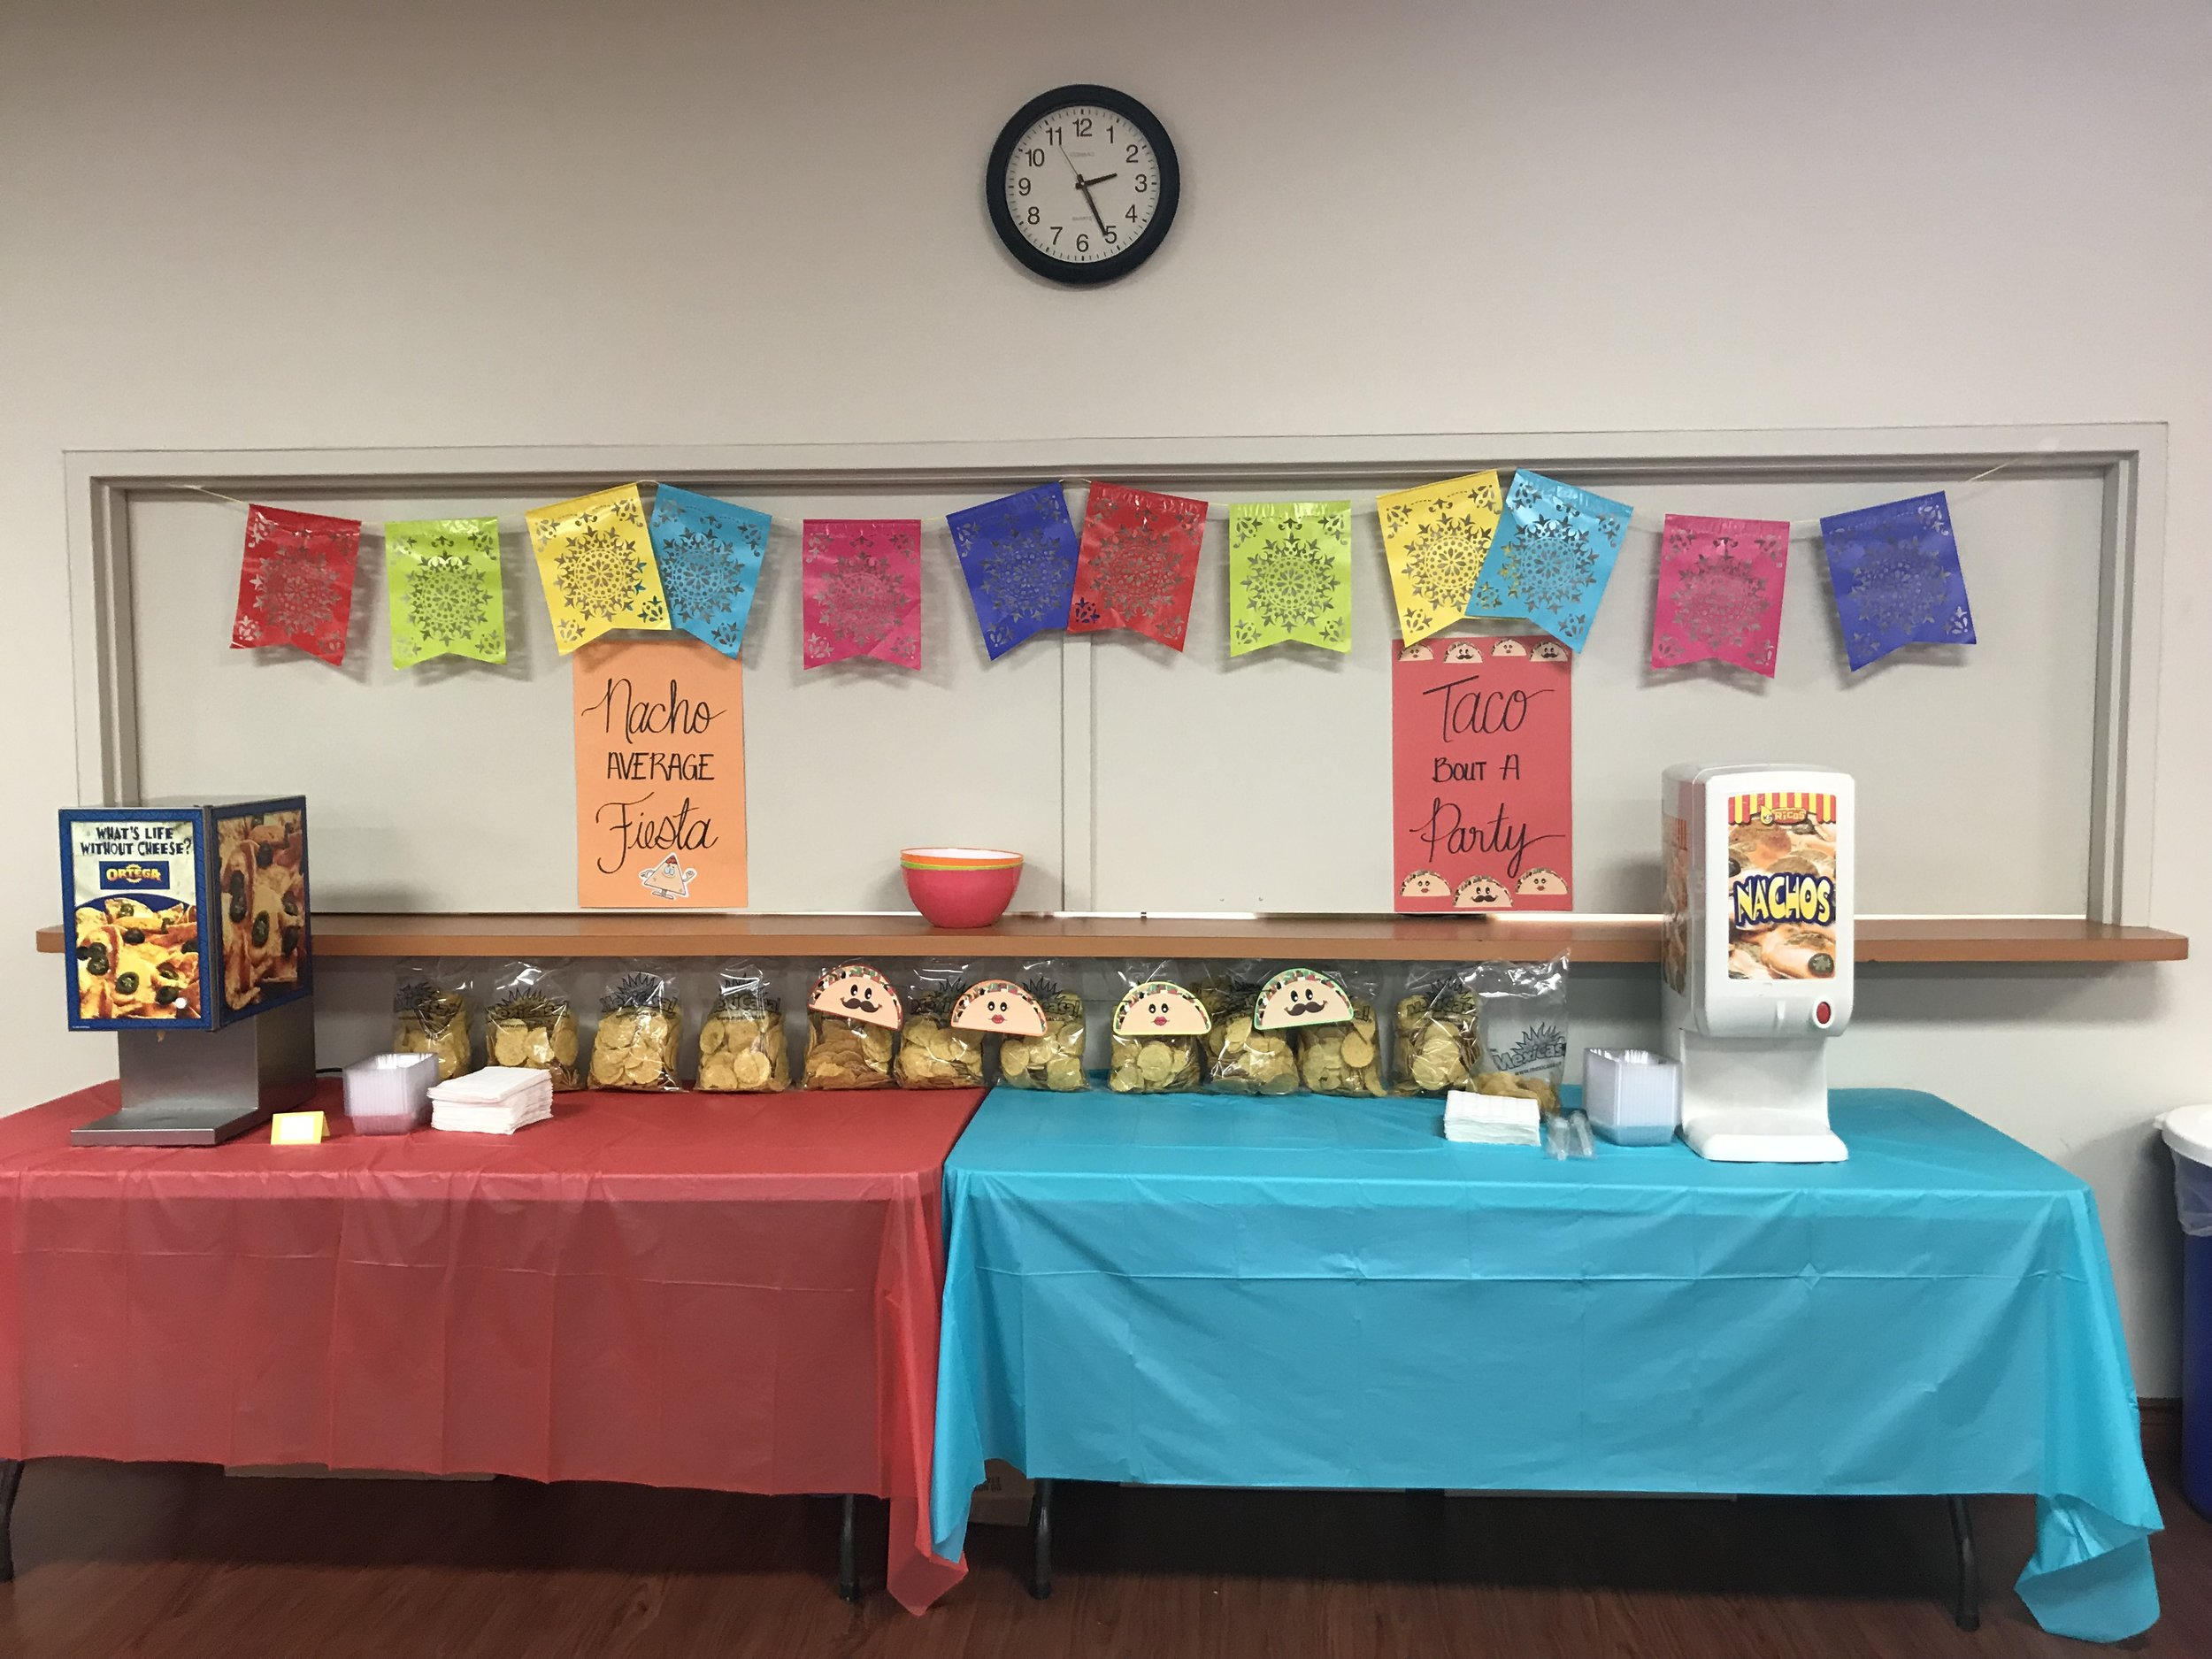 Our nacho and taco bar station. Fiesta banner from Party City, Handmade posters, free printable taco banner, Nachos and cheese from PK Snacks.